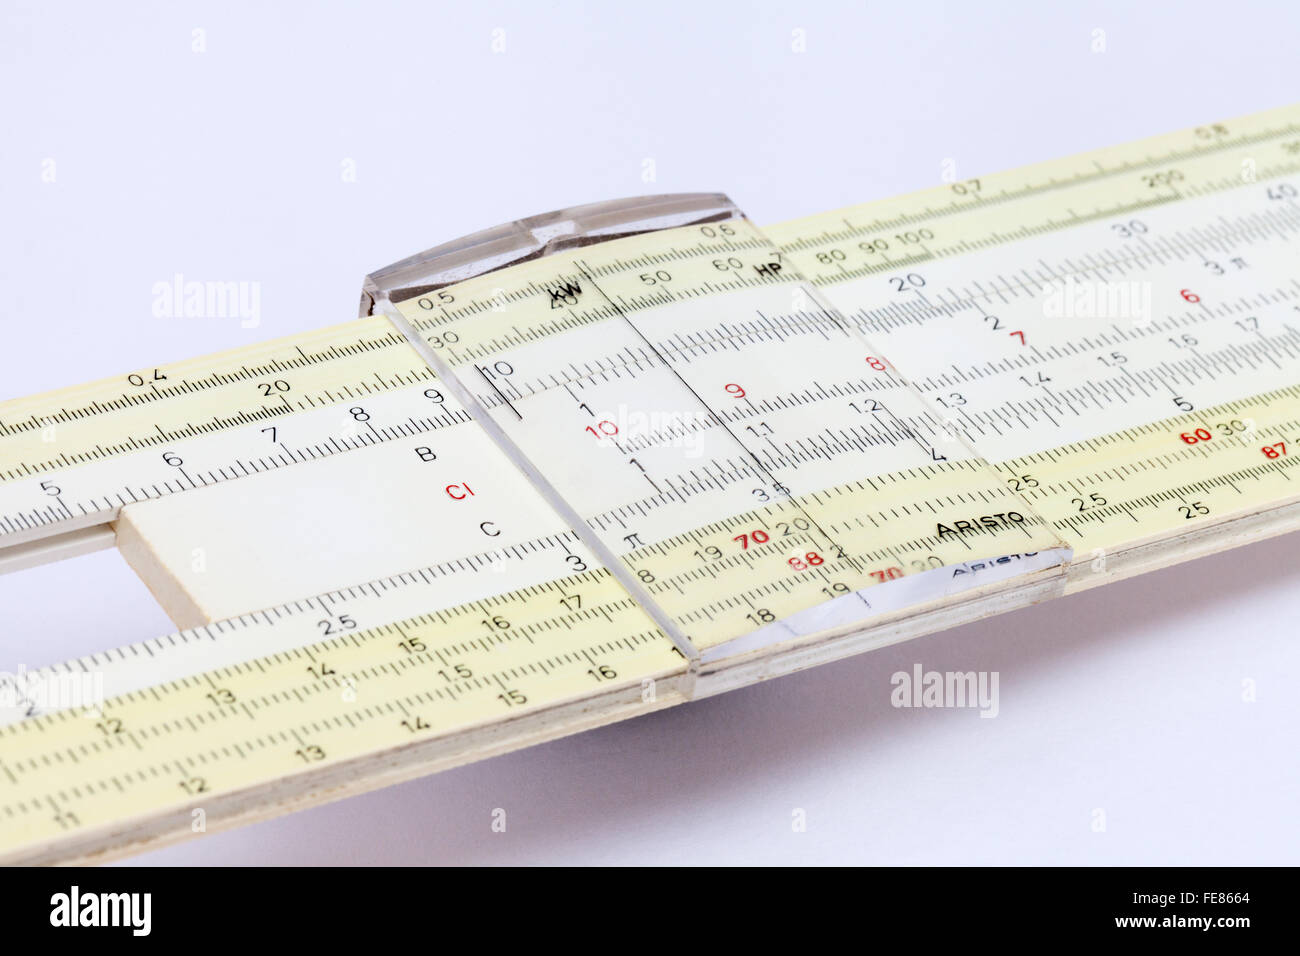 An old Aristo slide ruler used in maths, close up, UK - Stock Image